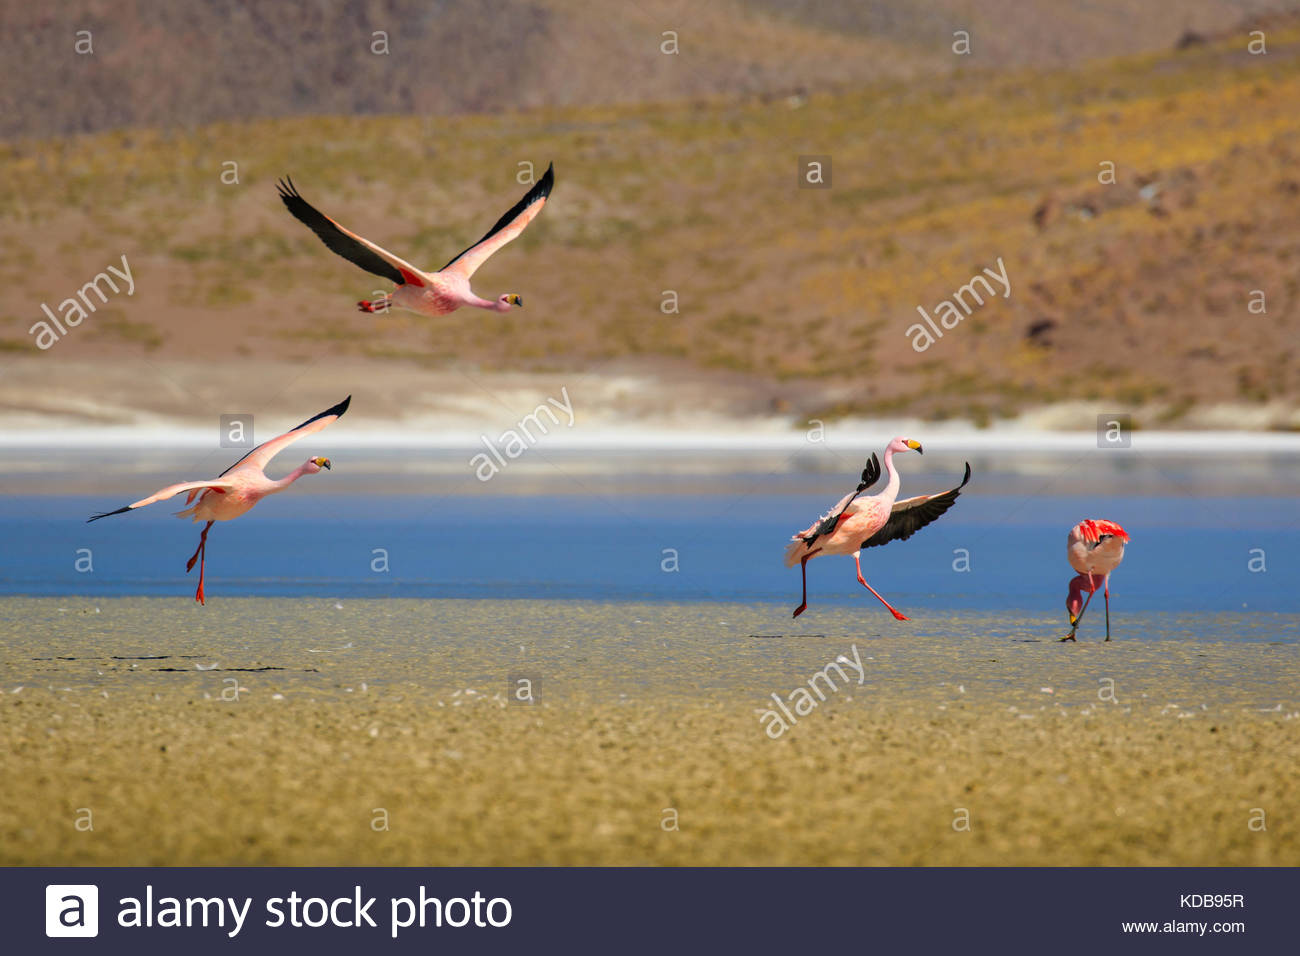 A group of flamingos, Phoenicopterus, landing on an Andean lake in the Bolivian Altiplano. - Stock Image